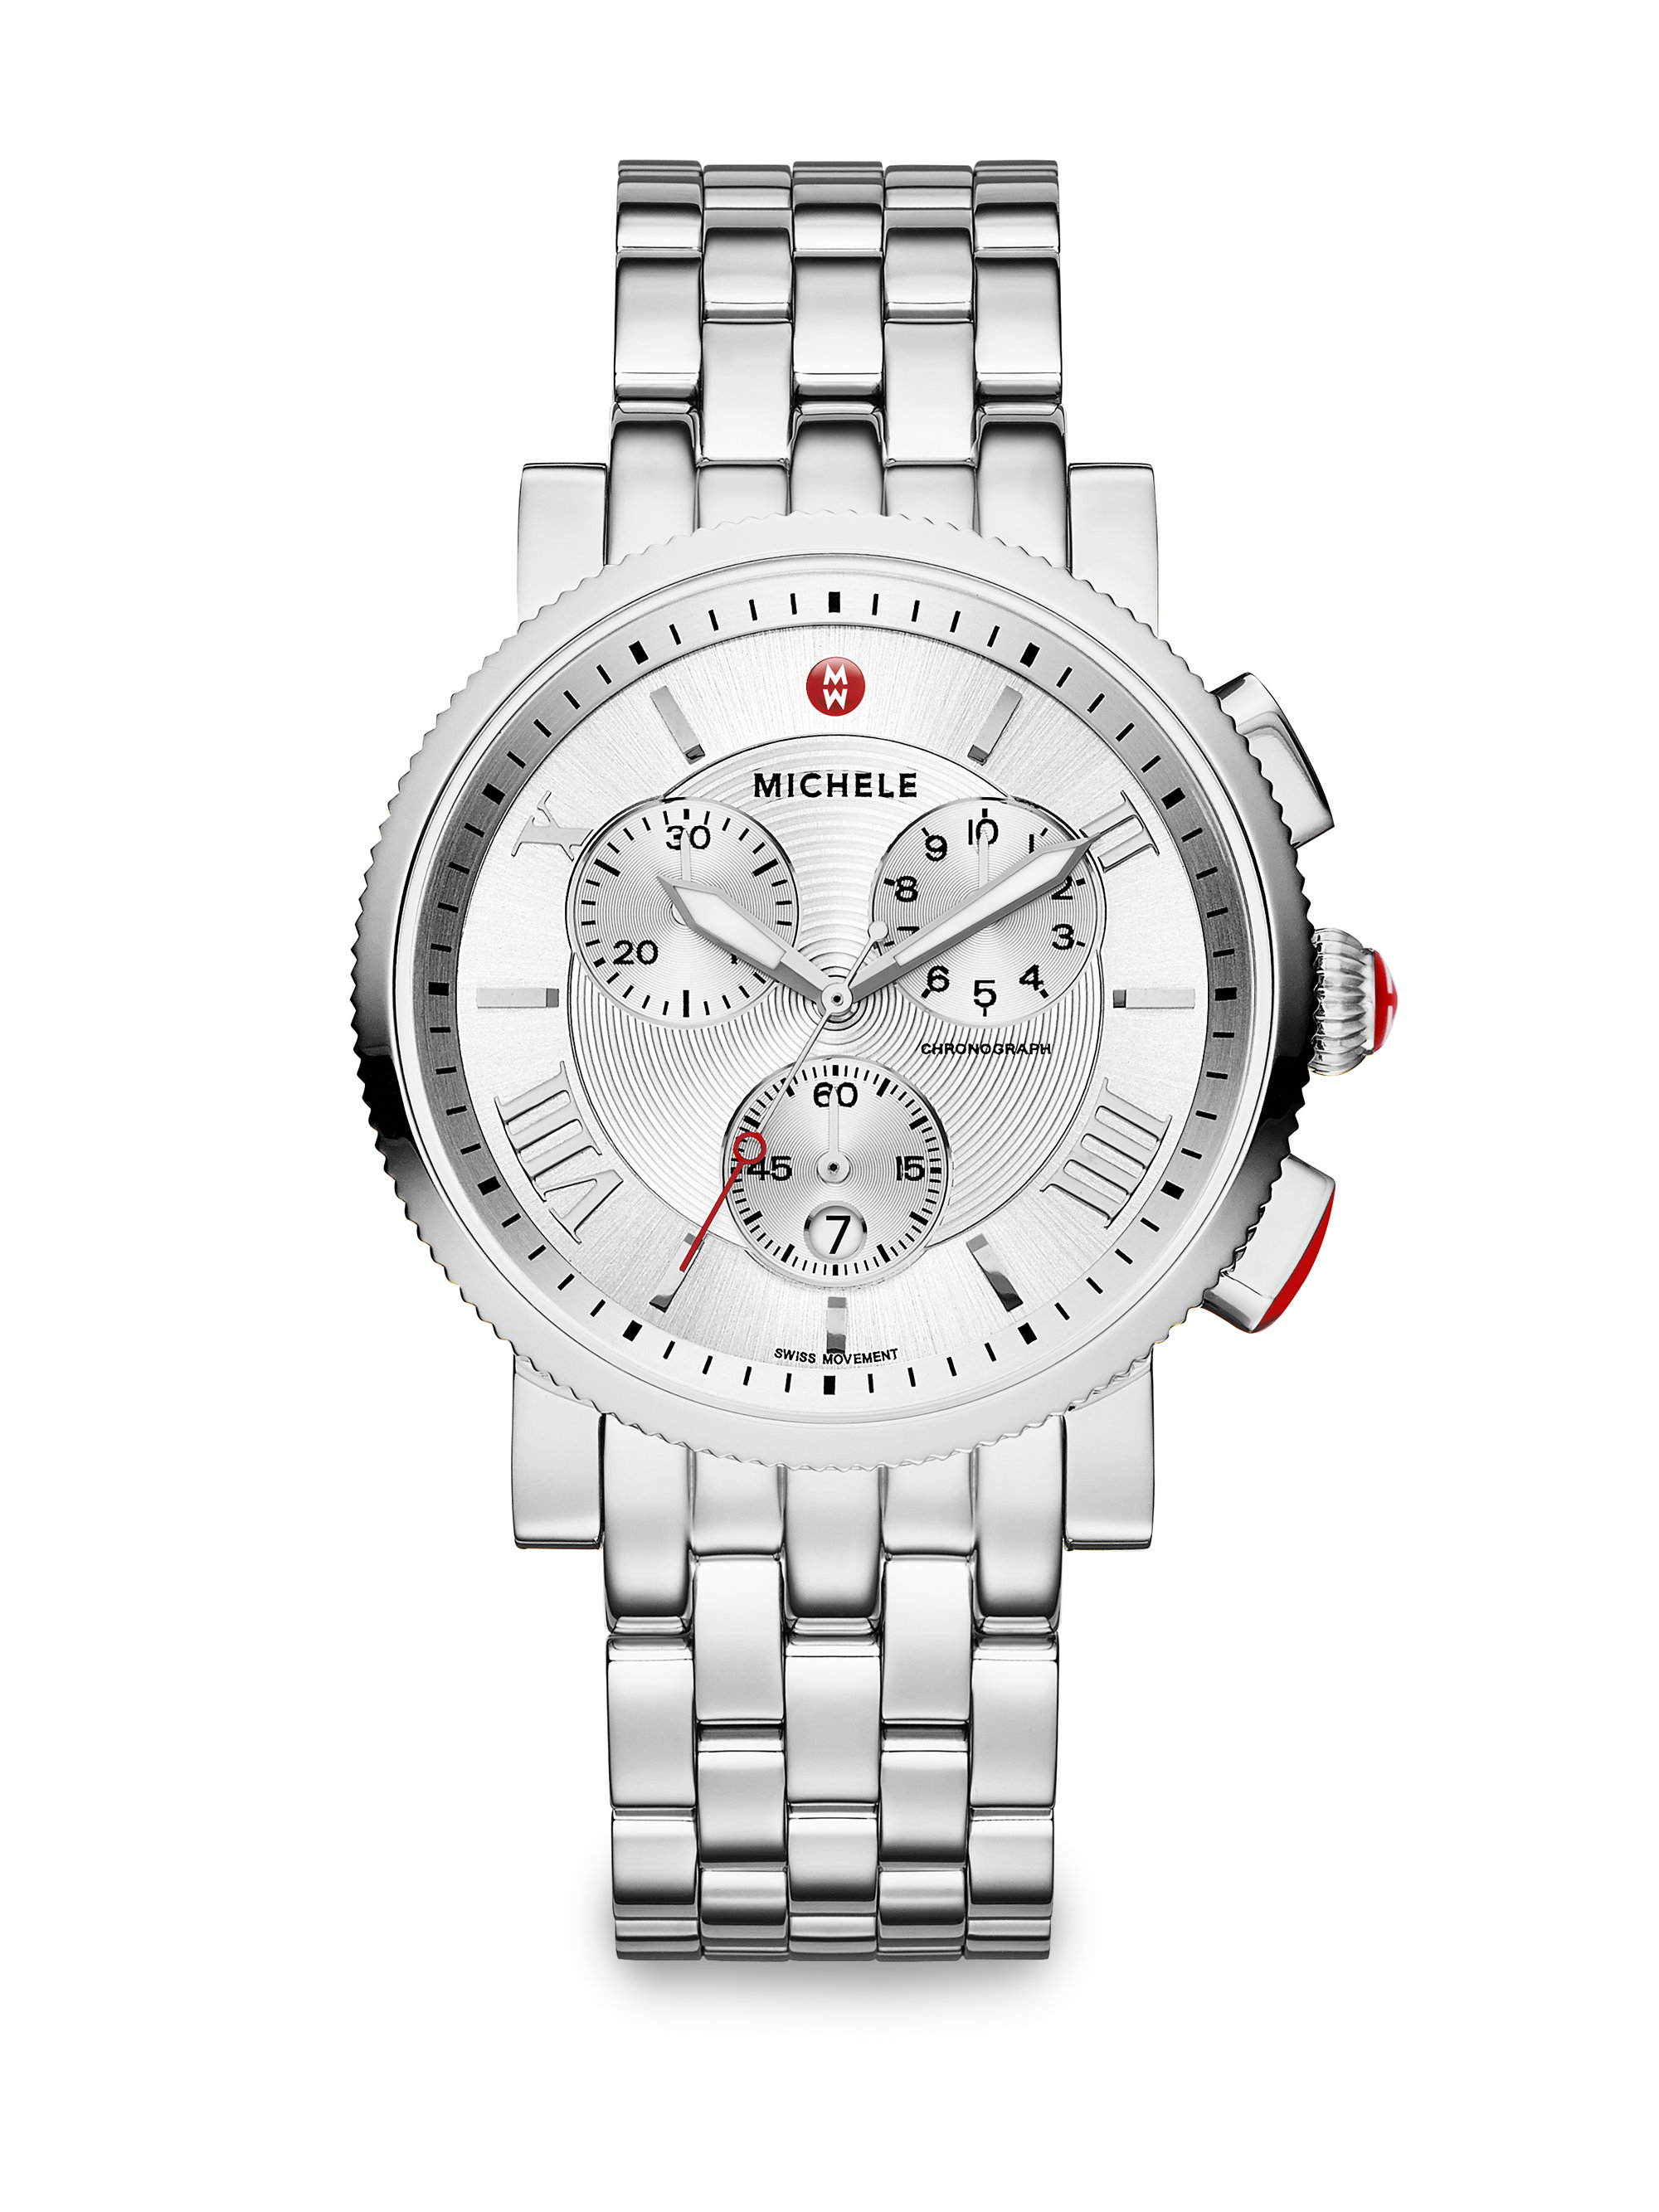 Michele Sport Sail 20 Stainless Steel Large Chronograph